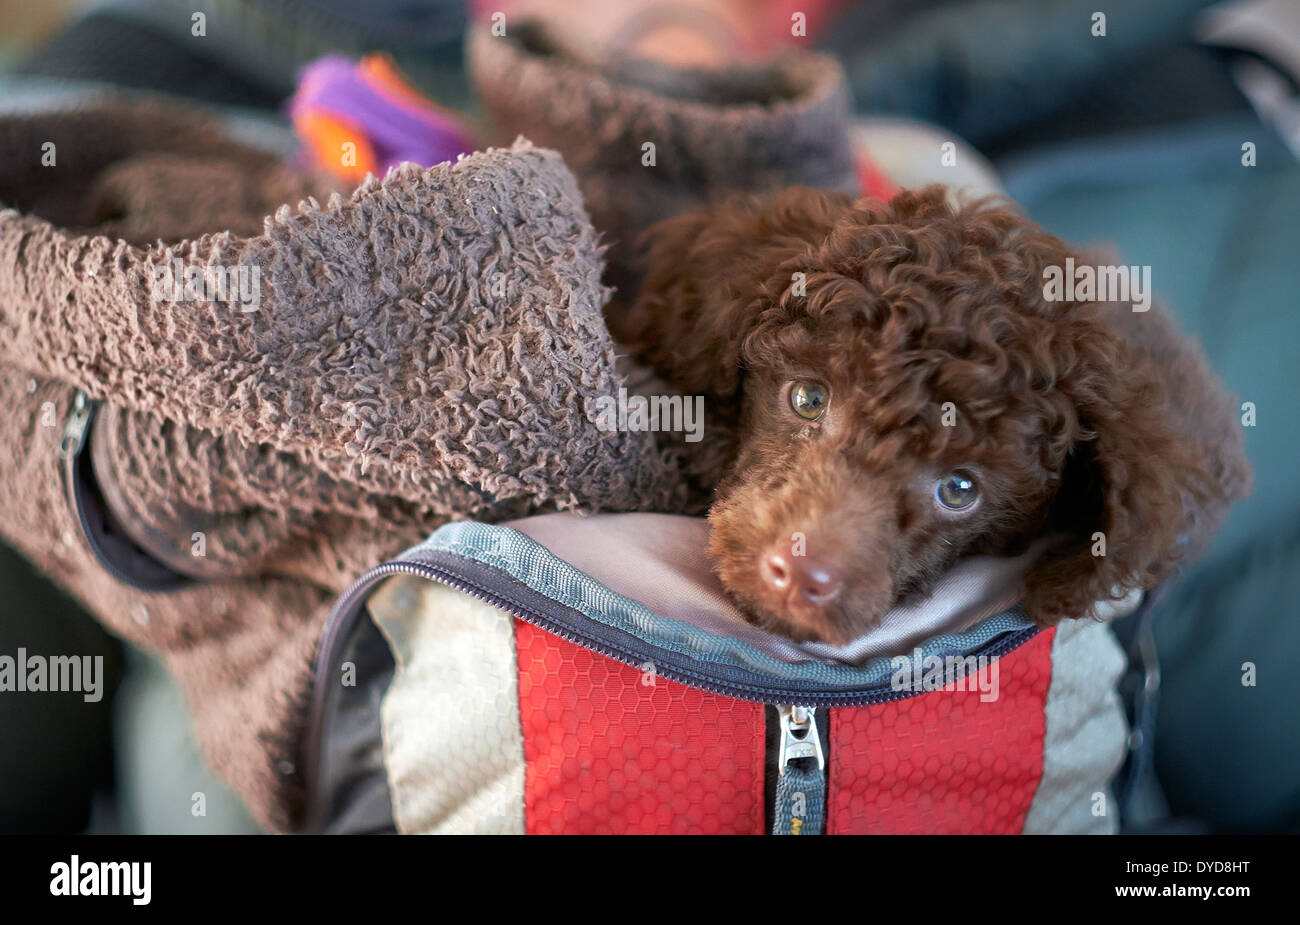 A miniature poodle wrapped up in a backpack for his first trip outdoors. - Stock Image